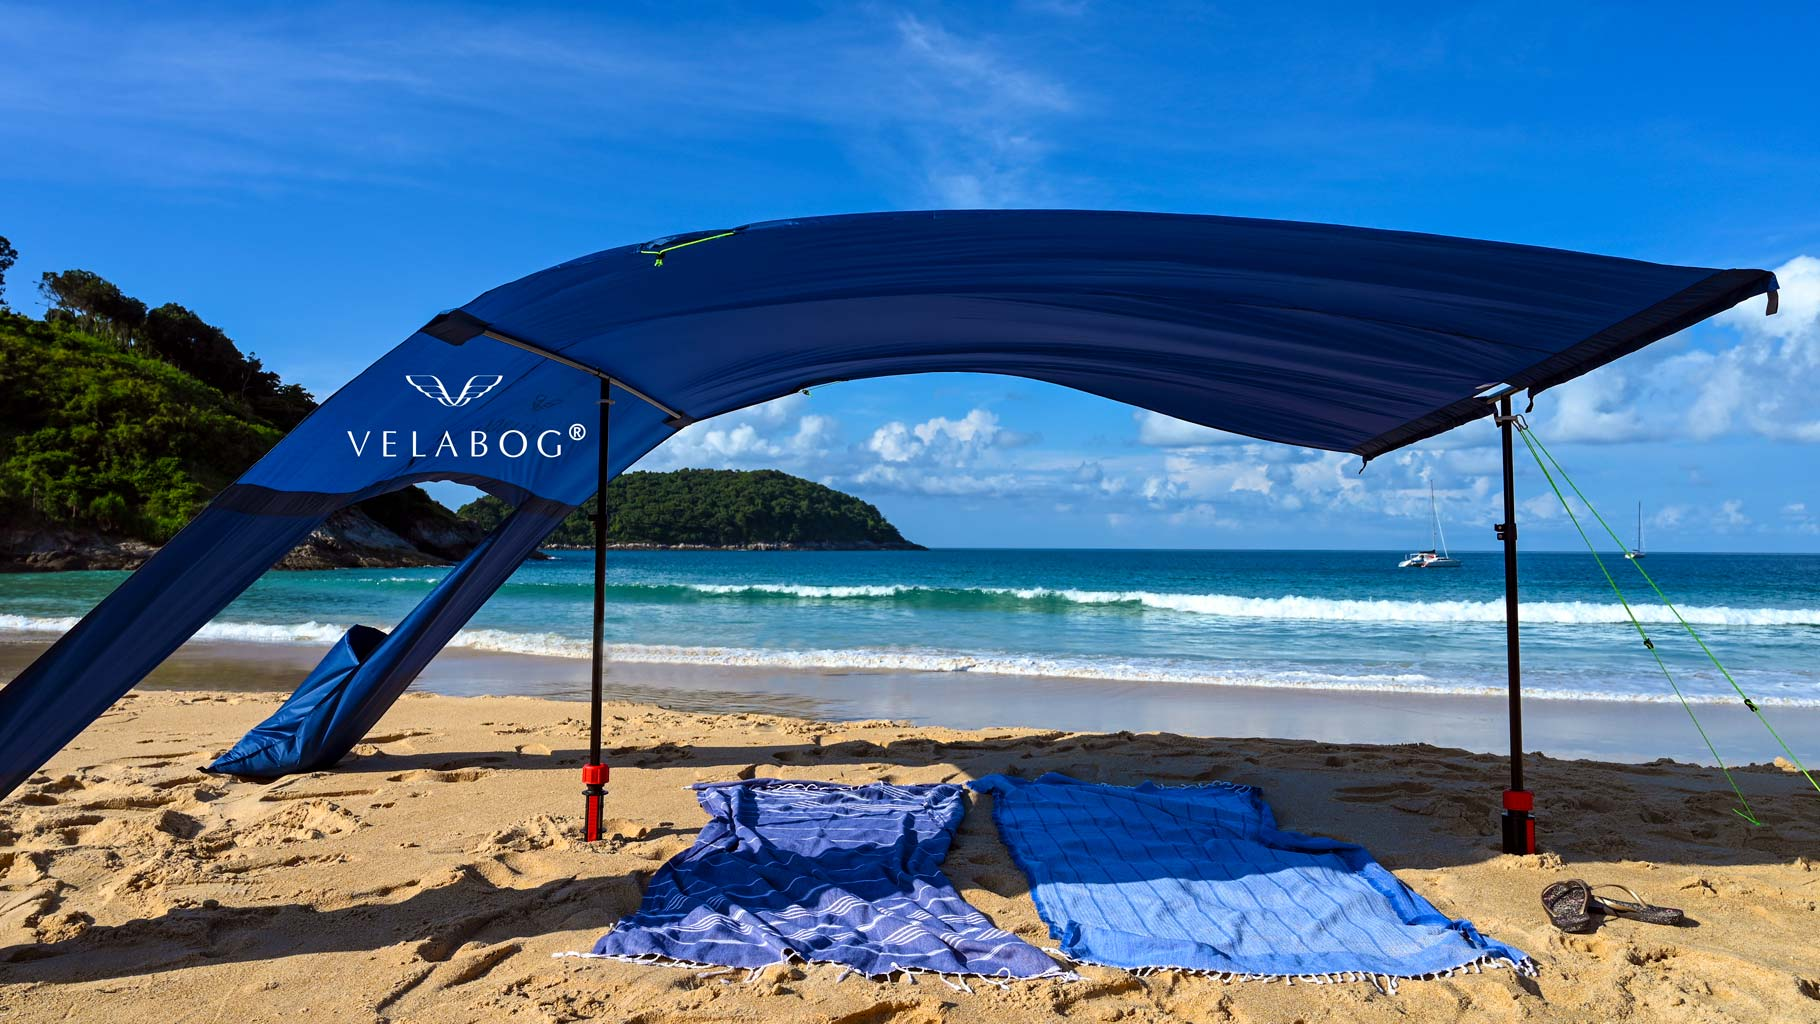 Velabog sun sail «Breeze» nightblue with extension set on the beach with gusty wind. Sun sail, beach umbrella and beach tent in one. Provides plenty of shadow in any type of wind, whether weak, strong or gusty. Bottom view.